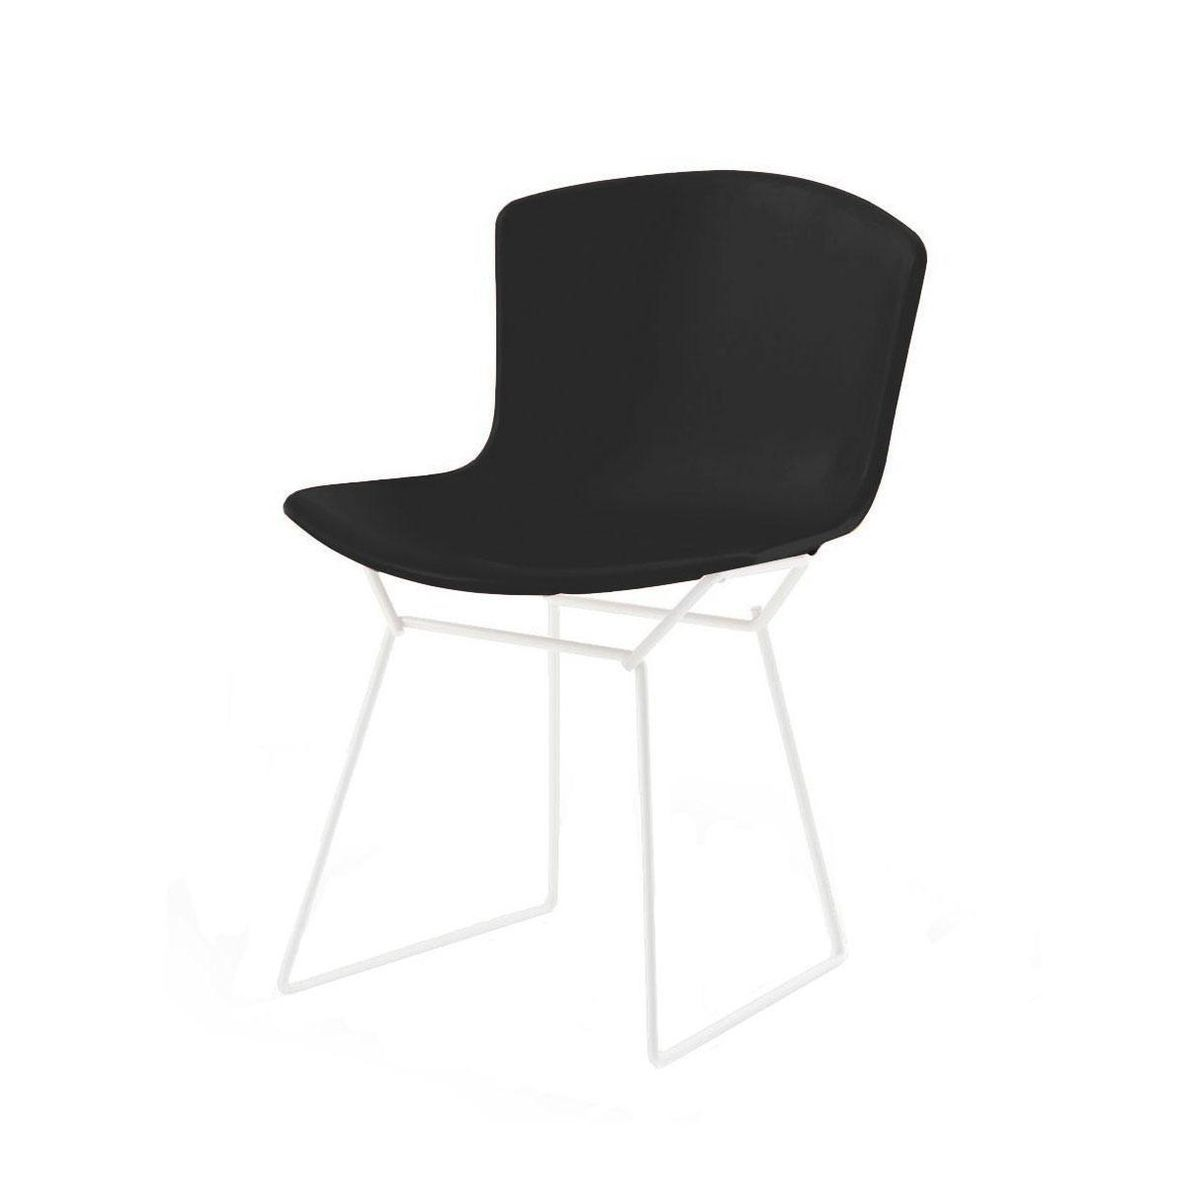 bertoia plastic side chair chaise blanc knoll. Black Bedroom Furniture Sets. Home Design Ideas